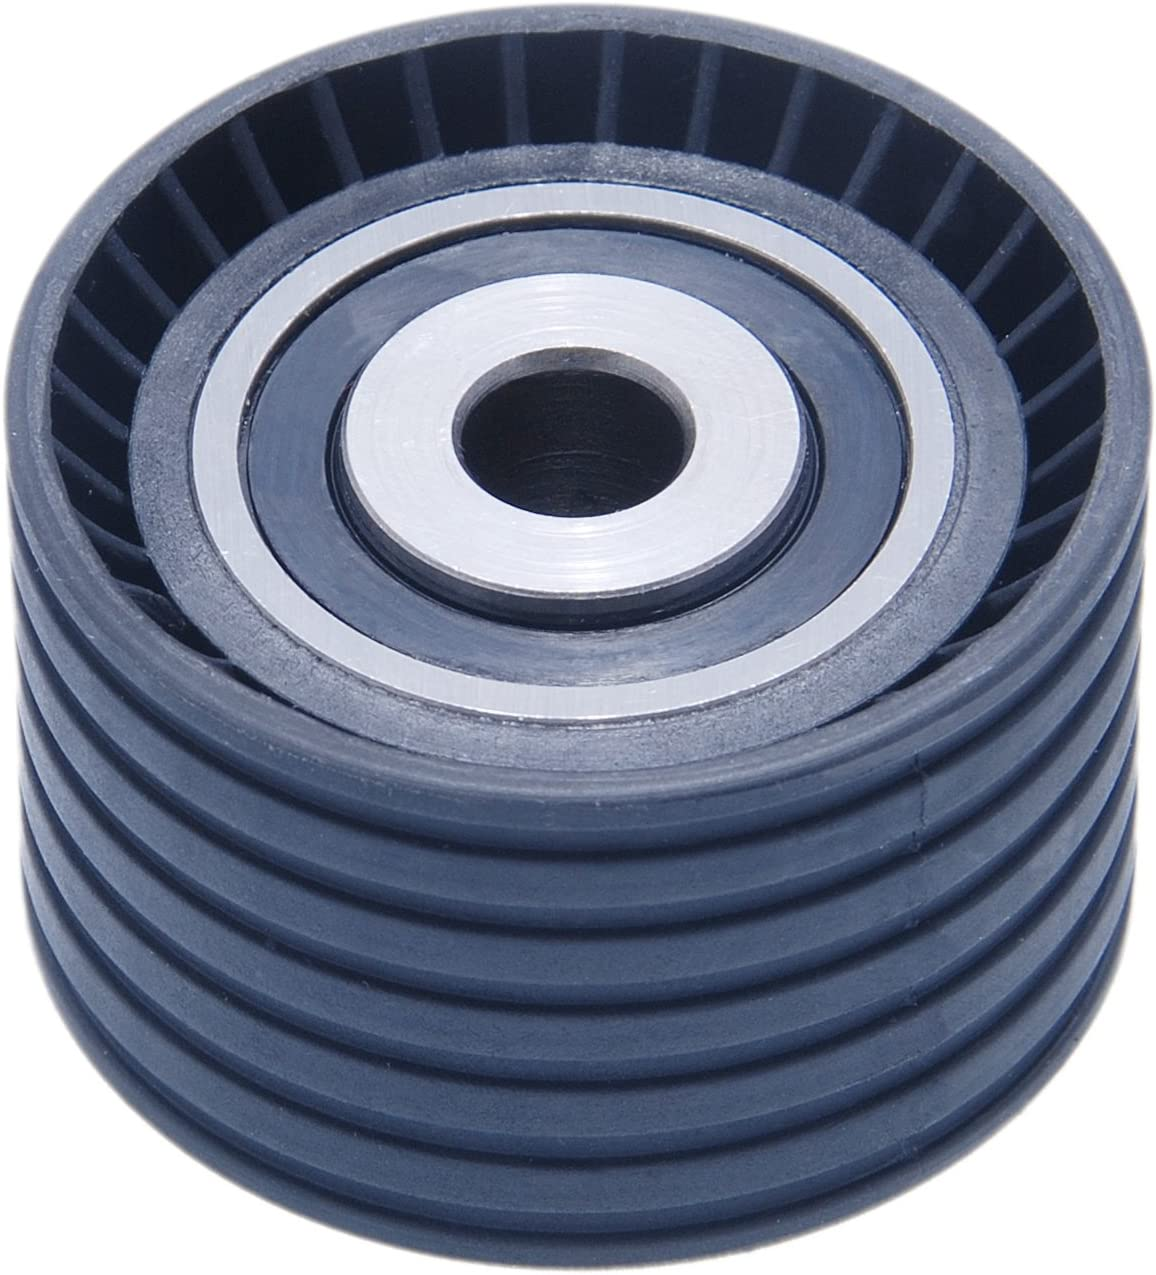 16806-00Qa6 Sale item 1680600Qa6 - Pulley For Super beauty product restock quality top Idler Nissan